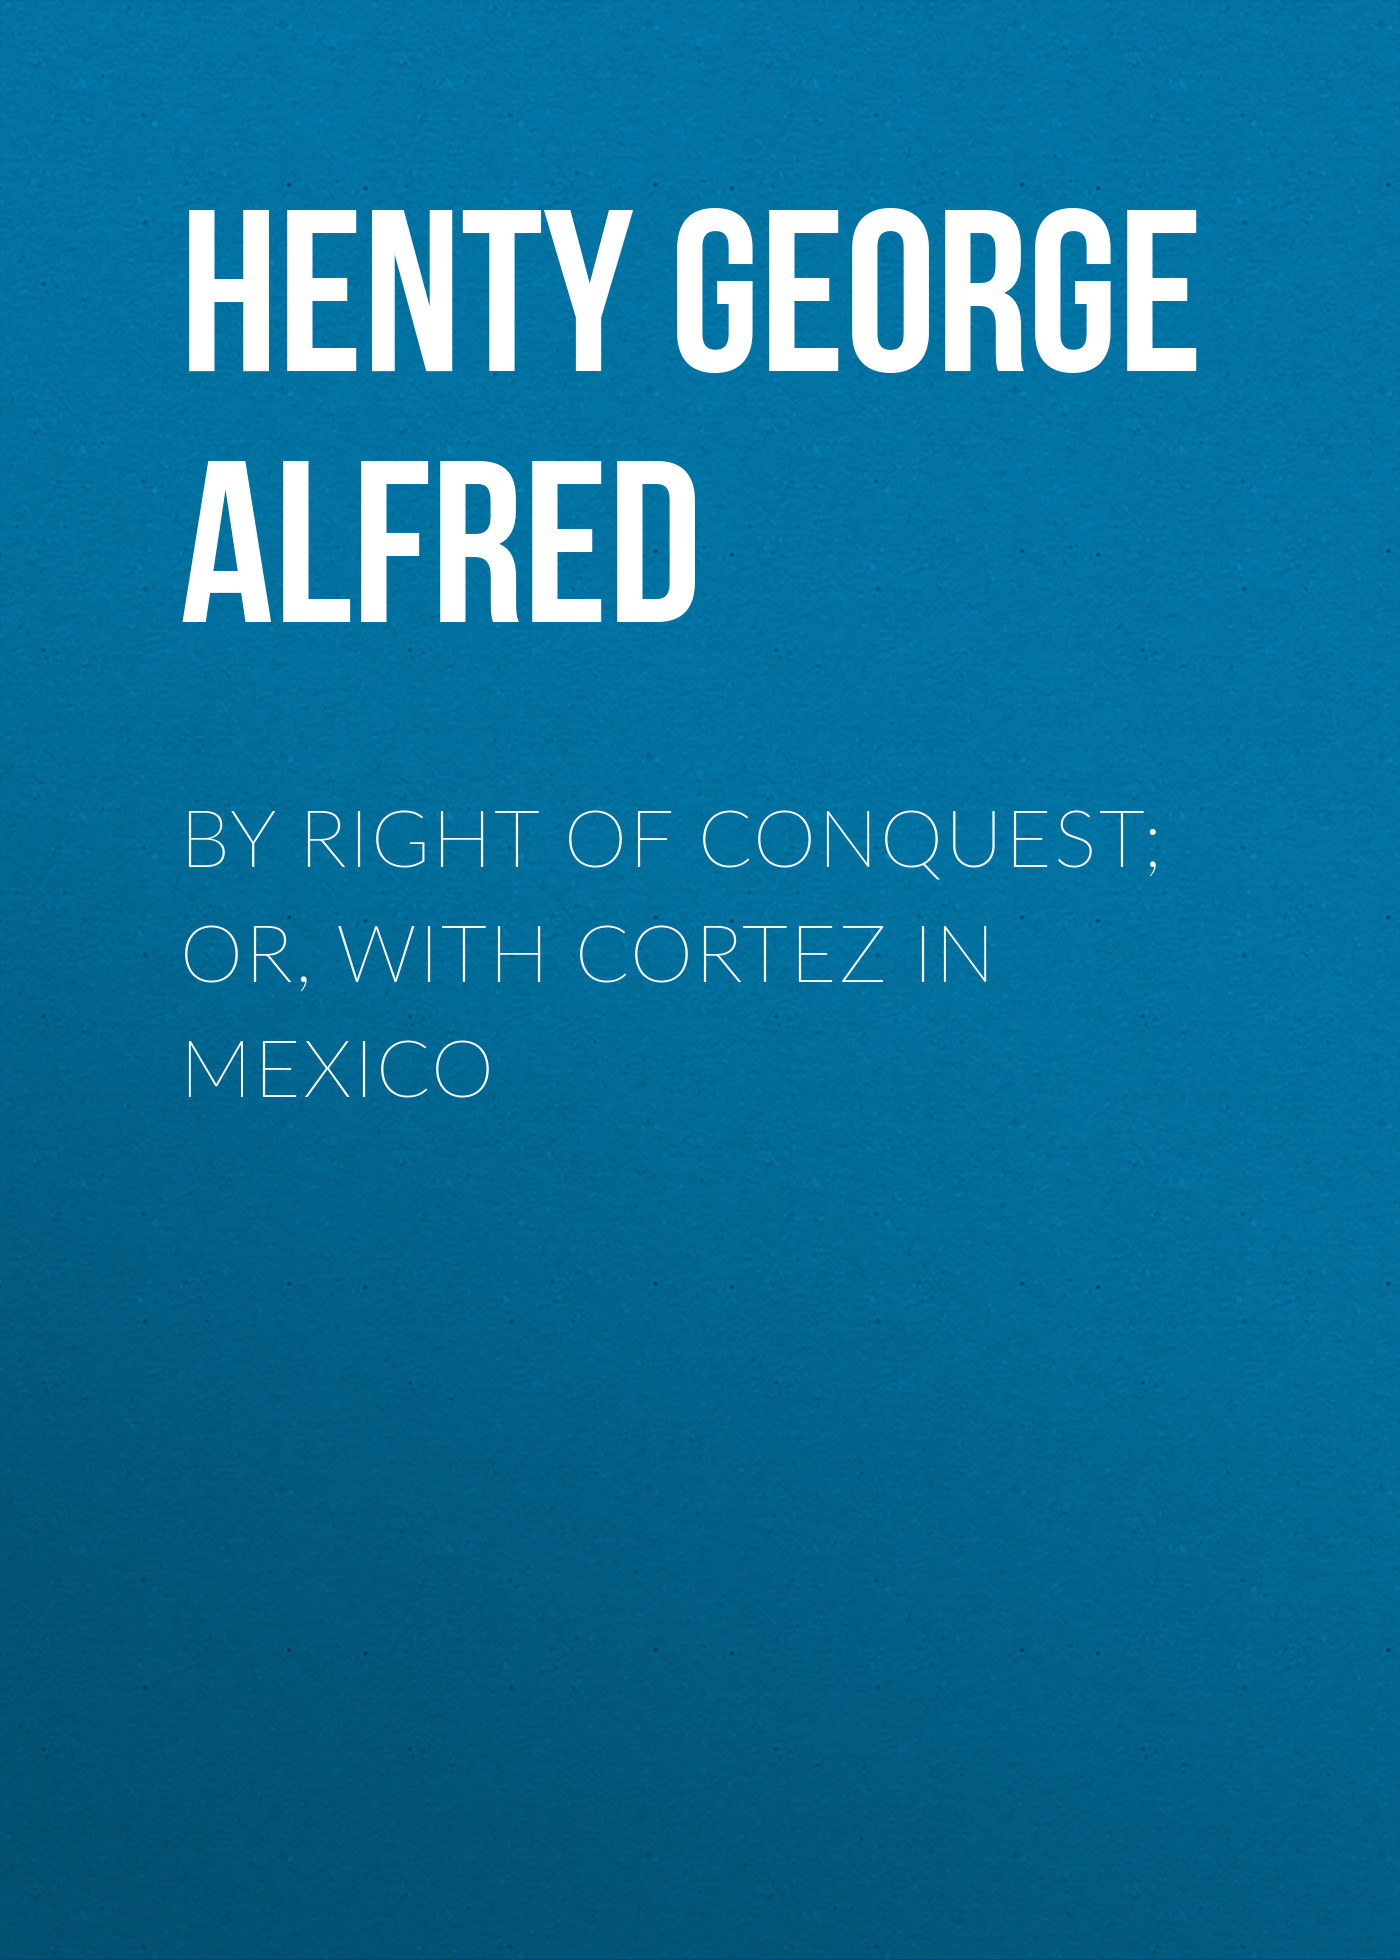 Henty George Alfred By Right of Conquest; Or, With Cortez in Mexico ned davis being right or making money